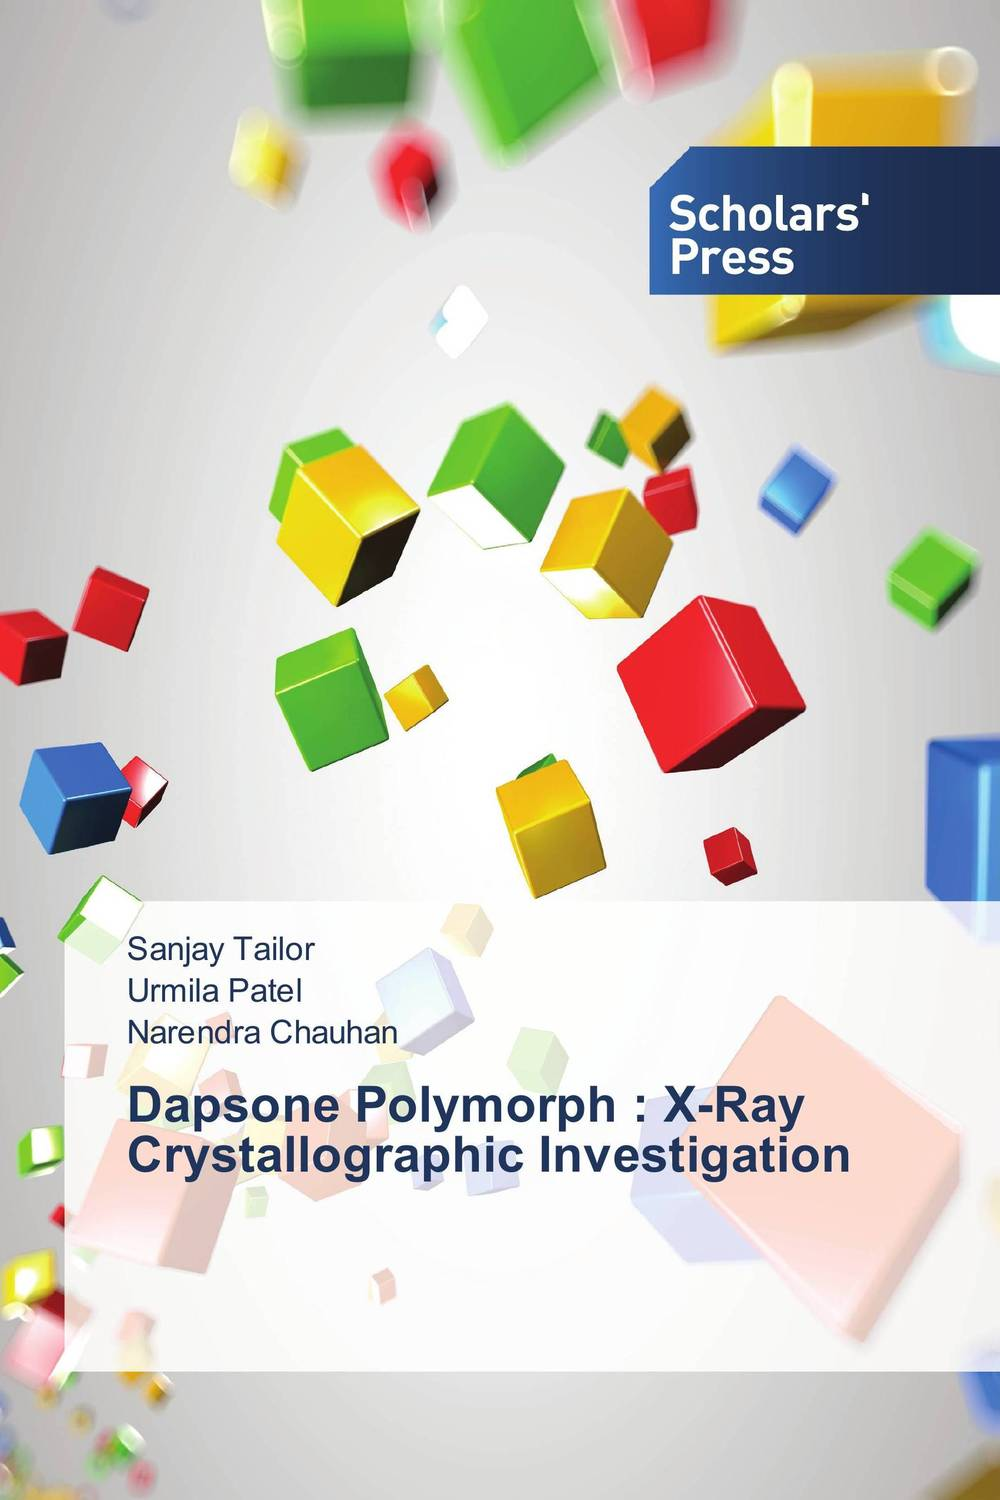 Dapsone Polymorph : X-Ray Crystallographic Investigation x ray crystallographic and theoretical investigations on aromatic compounds